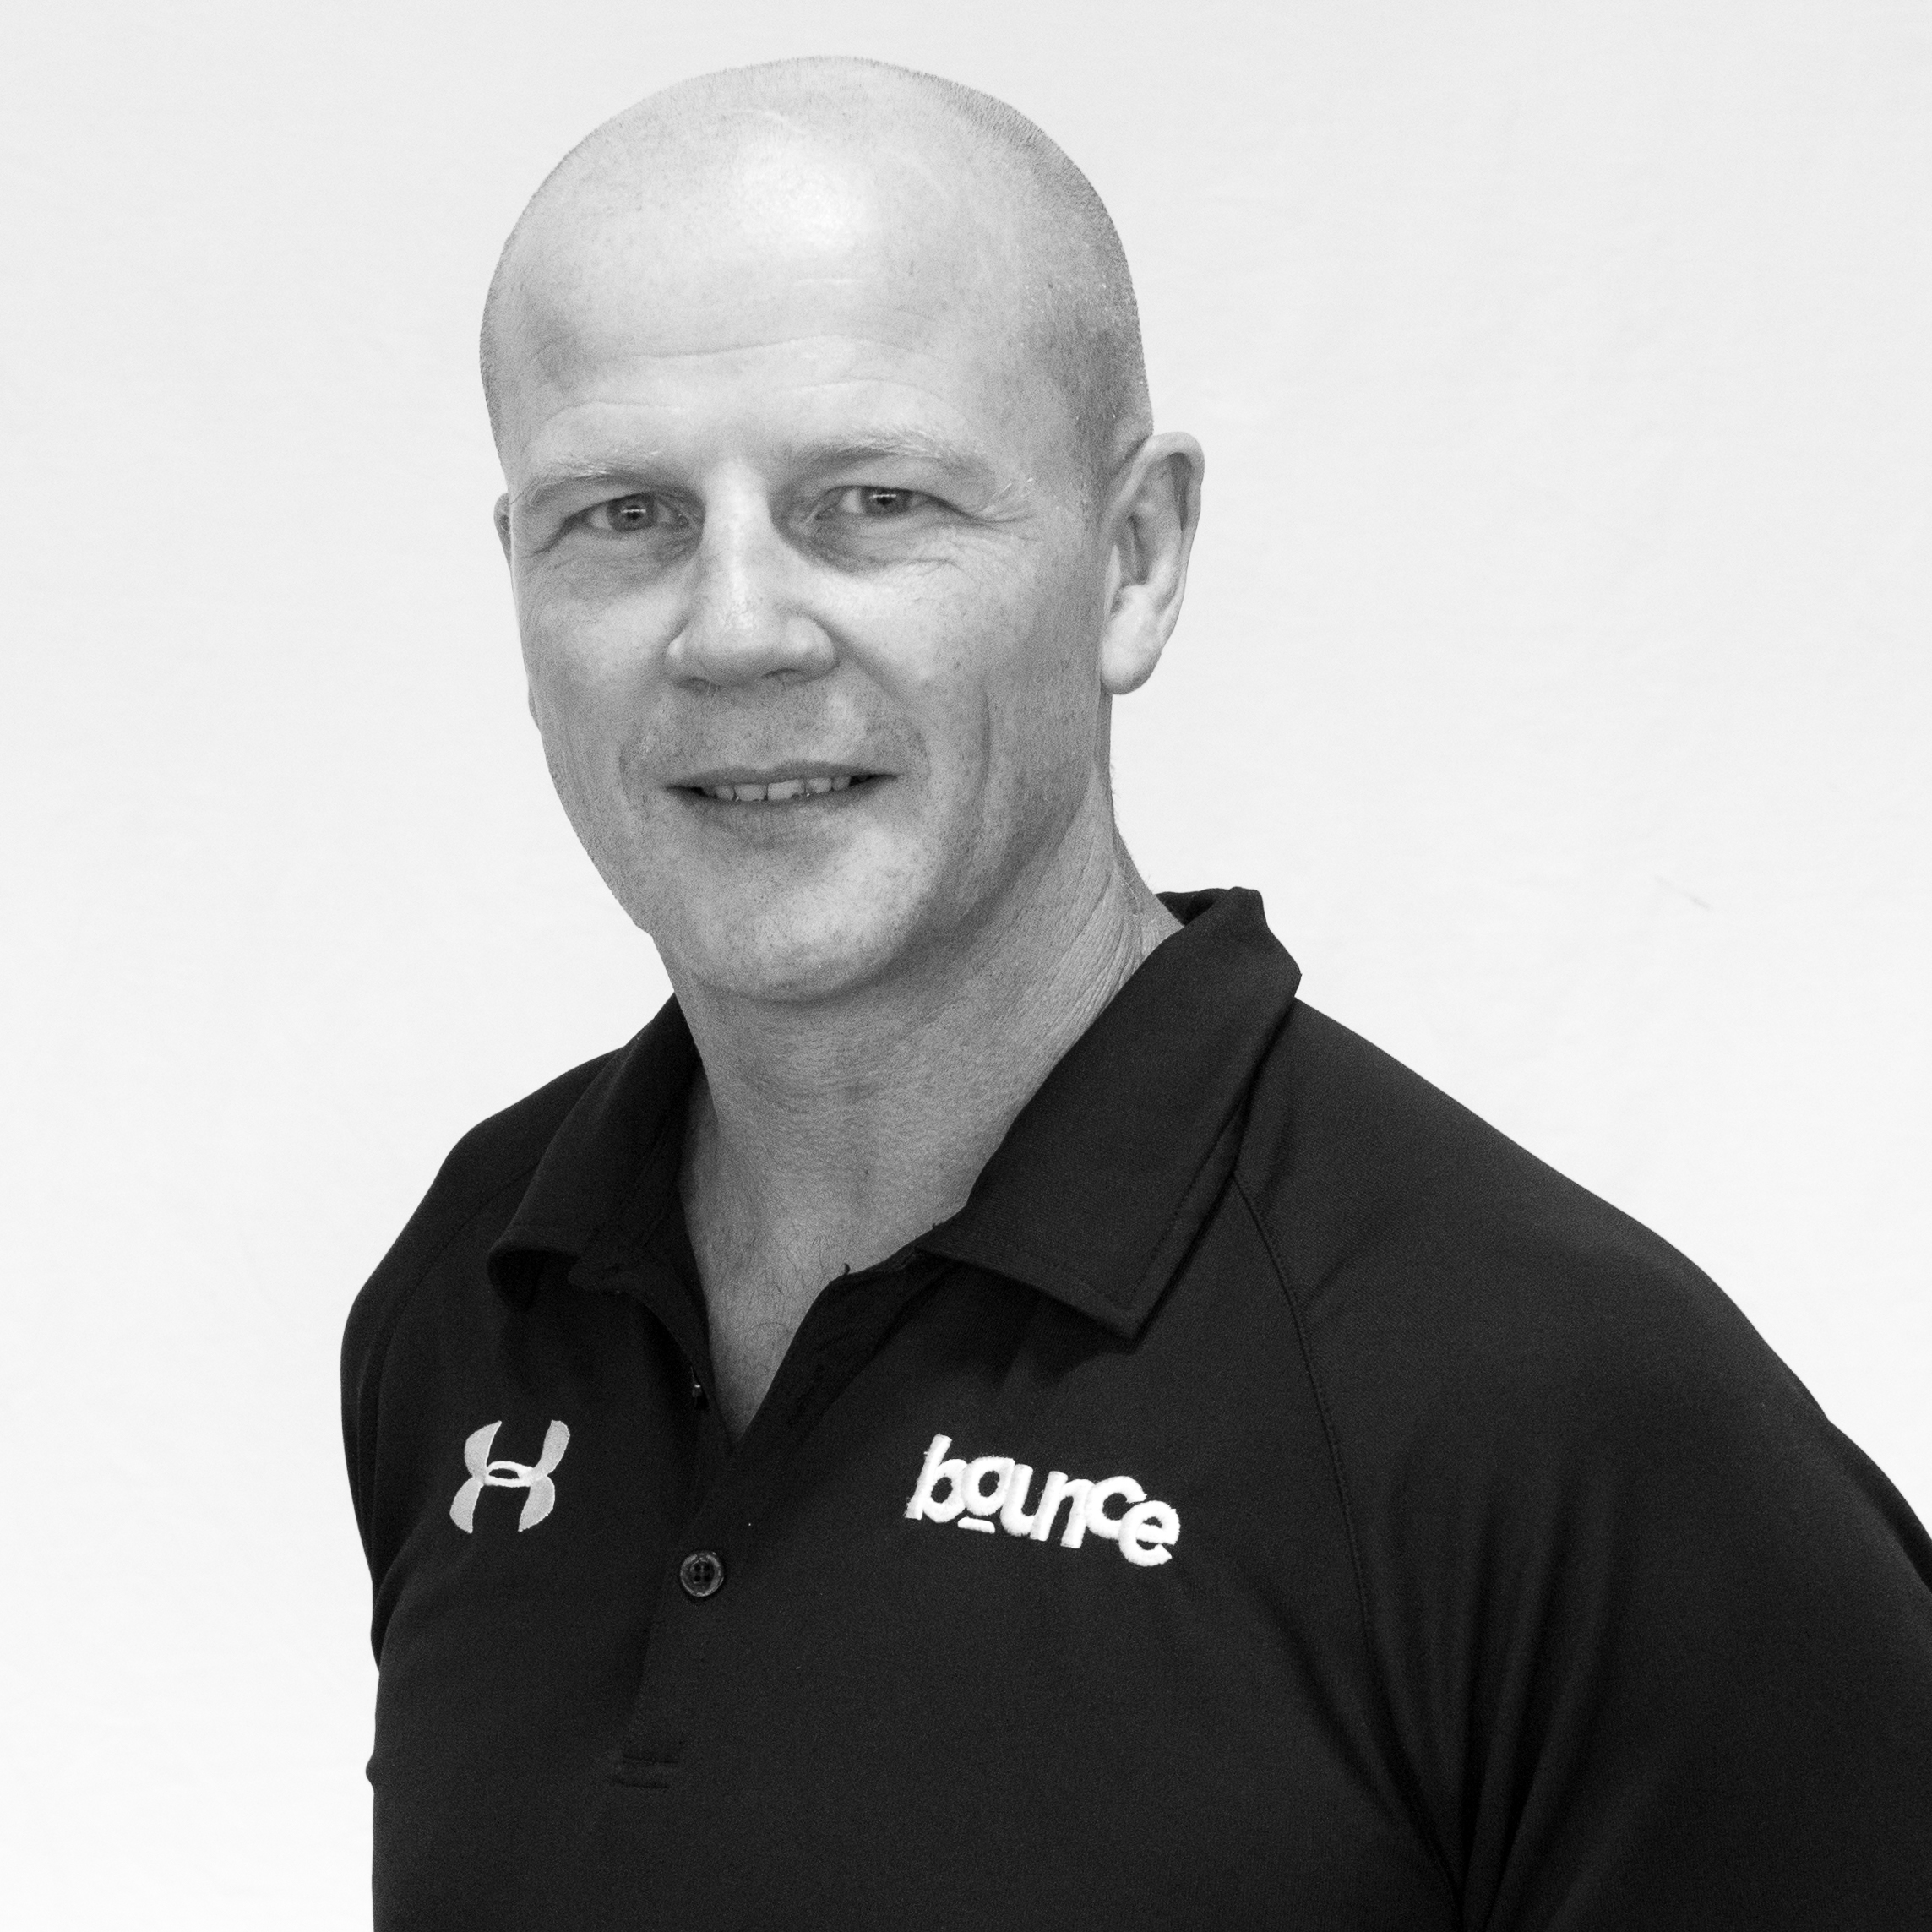 Andy Beckinsale - Chiropractor & Head of Clinic